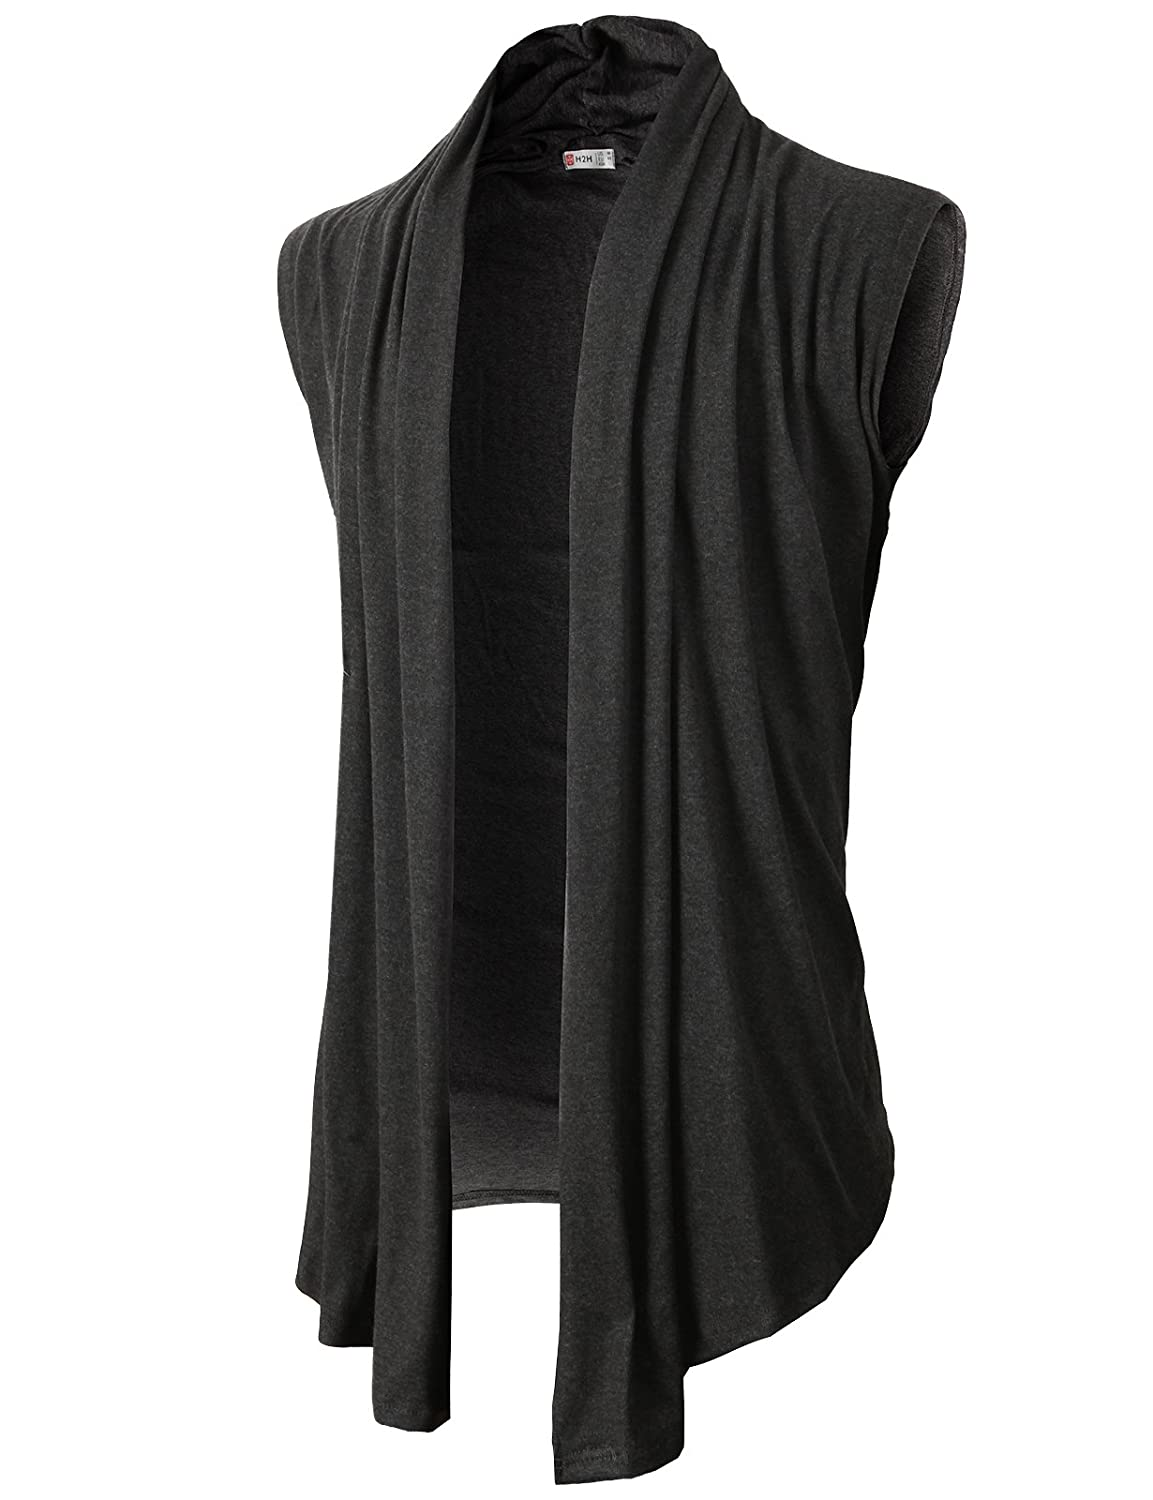 COOFANDY Men's Ruffle Shawl Collar Sleeveless Cardigan Vest Long ...